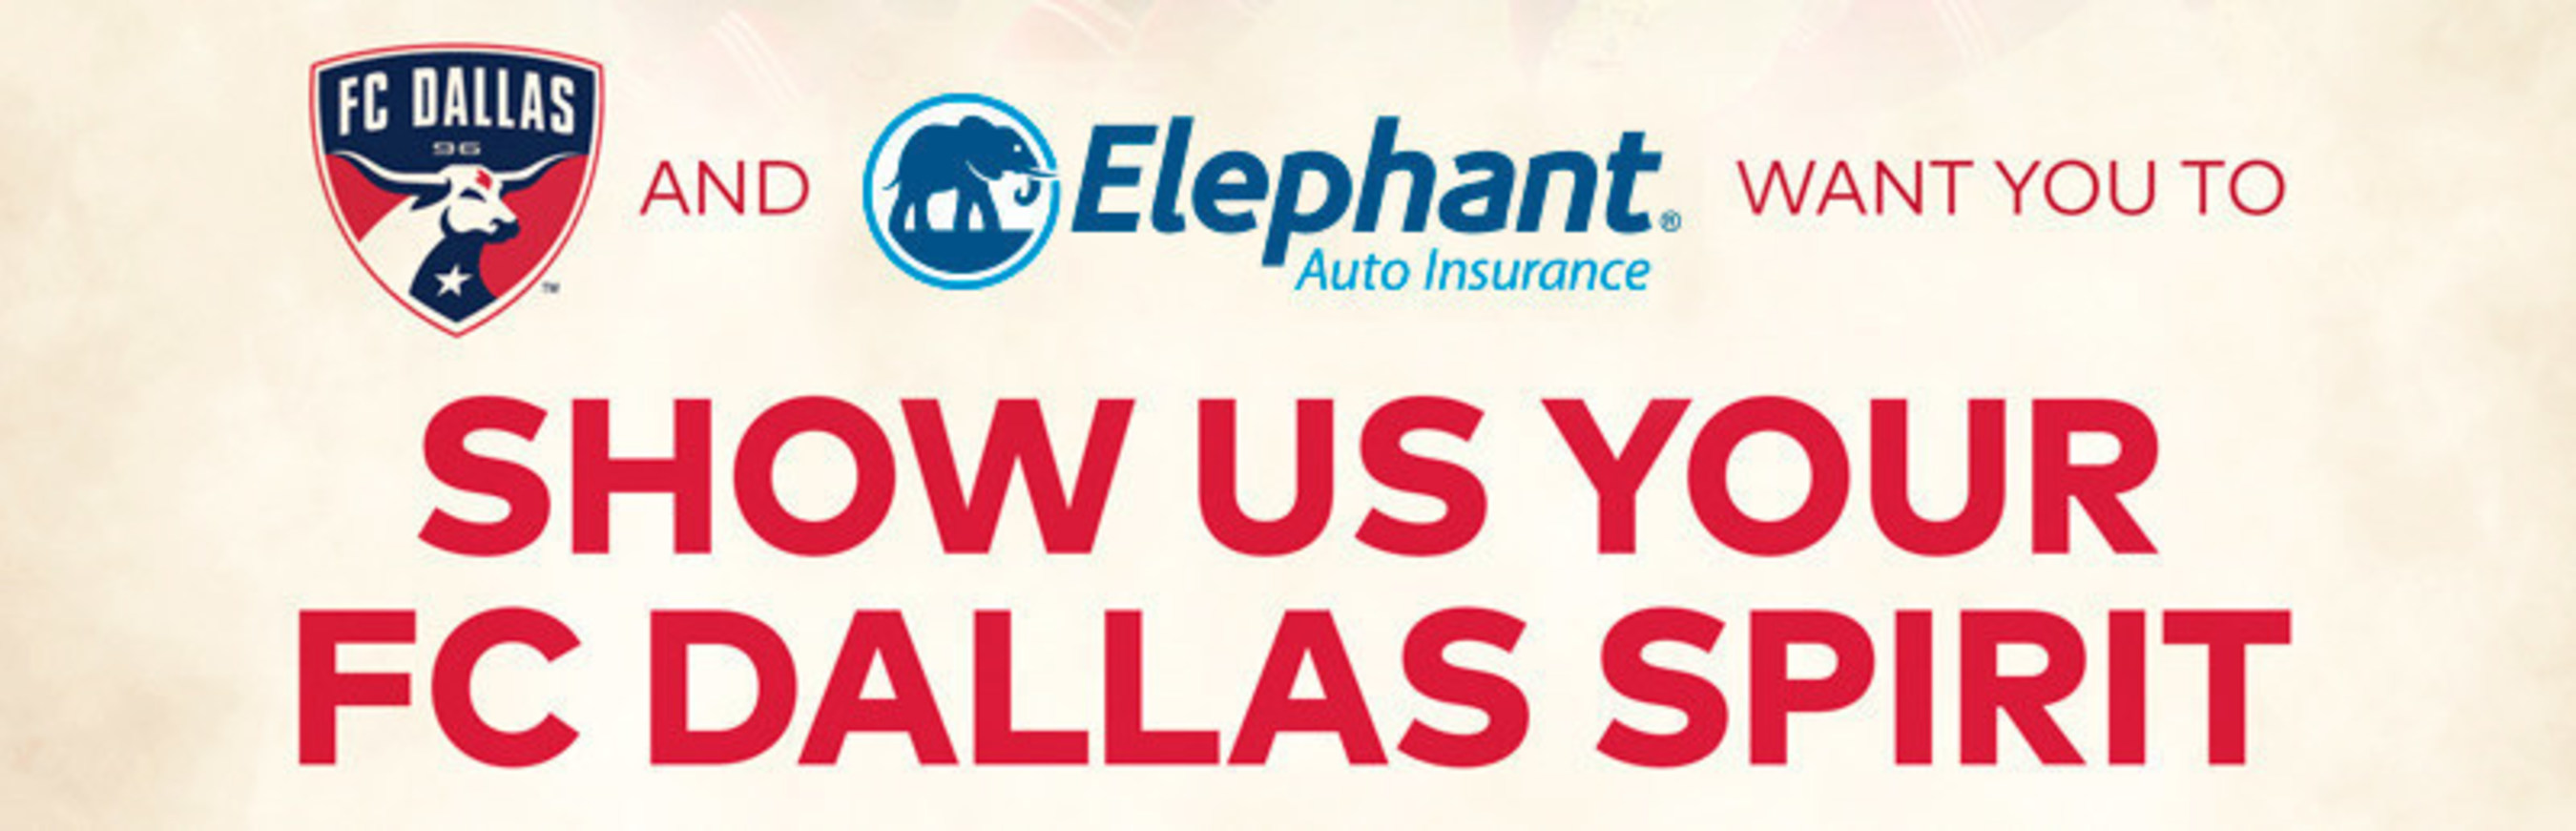 Elephant Auto Insurance Quote Elephant Auto Insurance Wants To See Your Fc Dallas Spirit